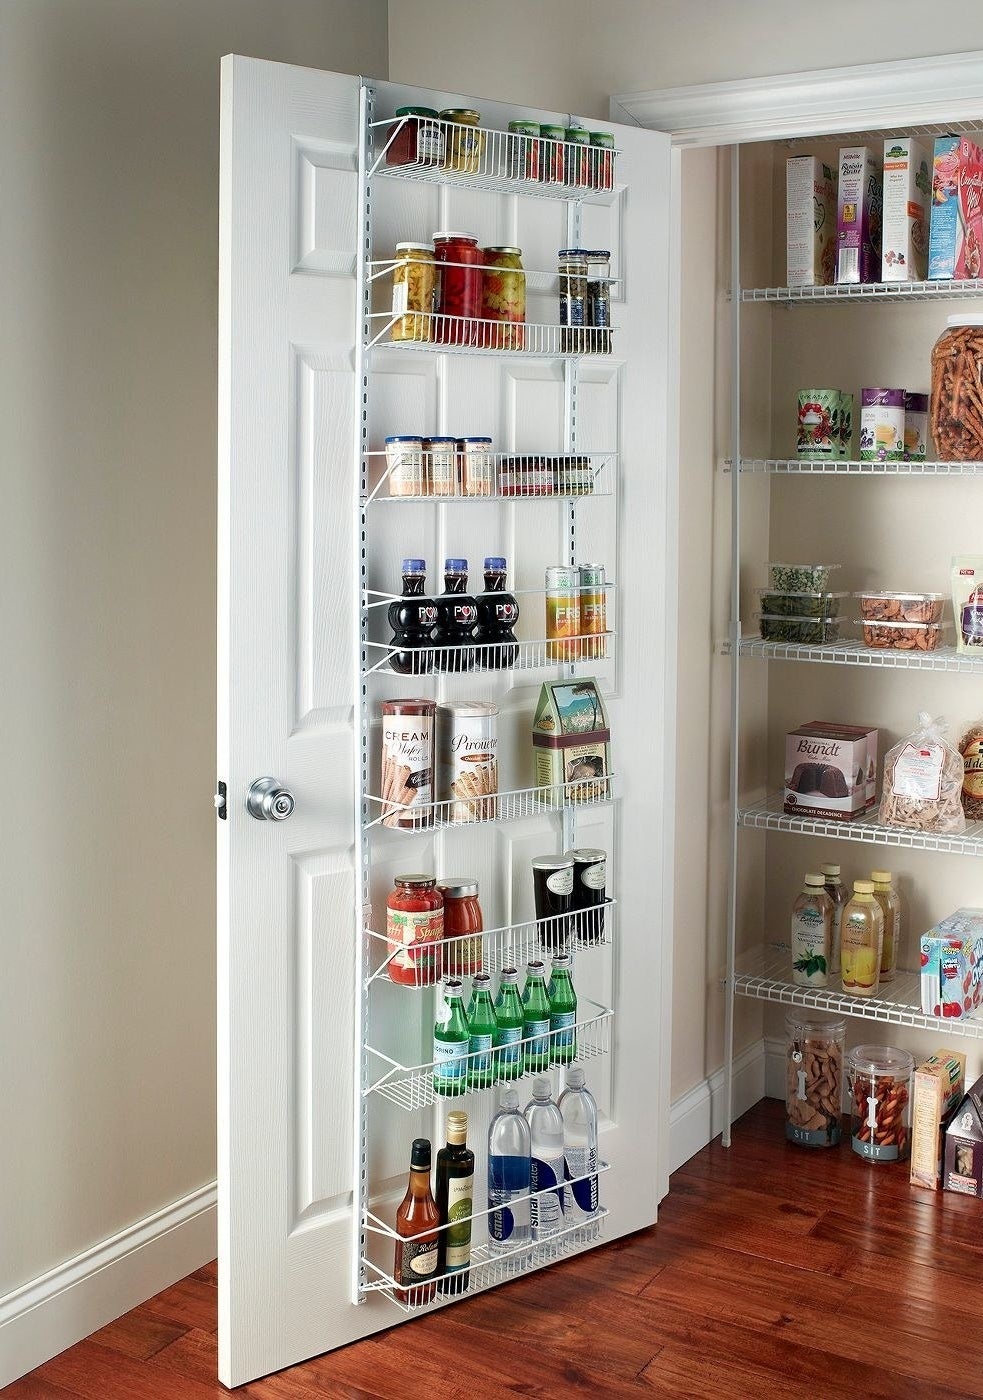 the ClosetMaid 8 tier adjustable wire rack hanging over a pantry door with food stuffs in each of its tiers